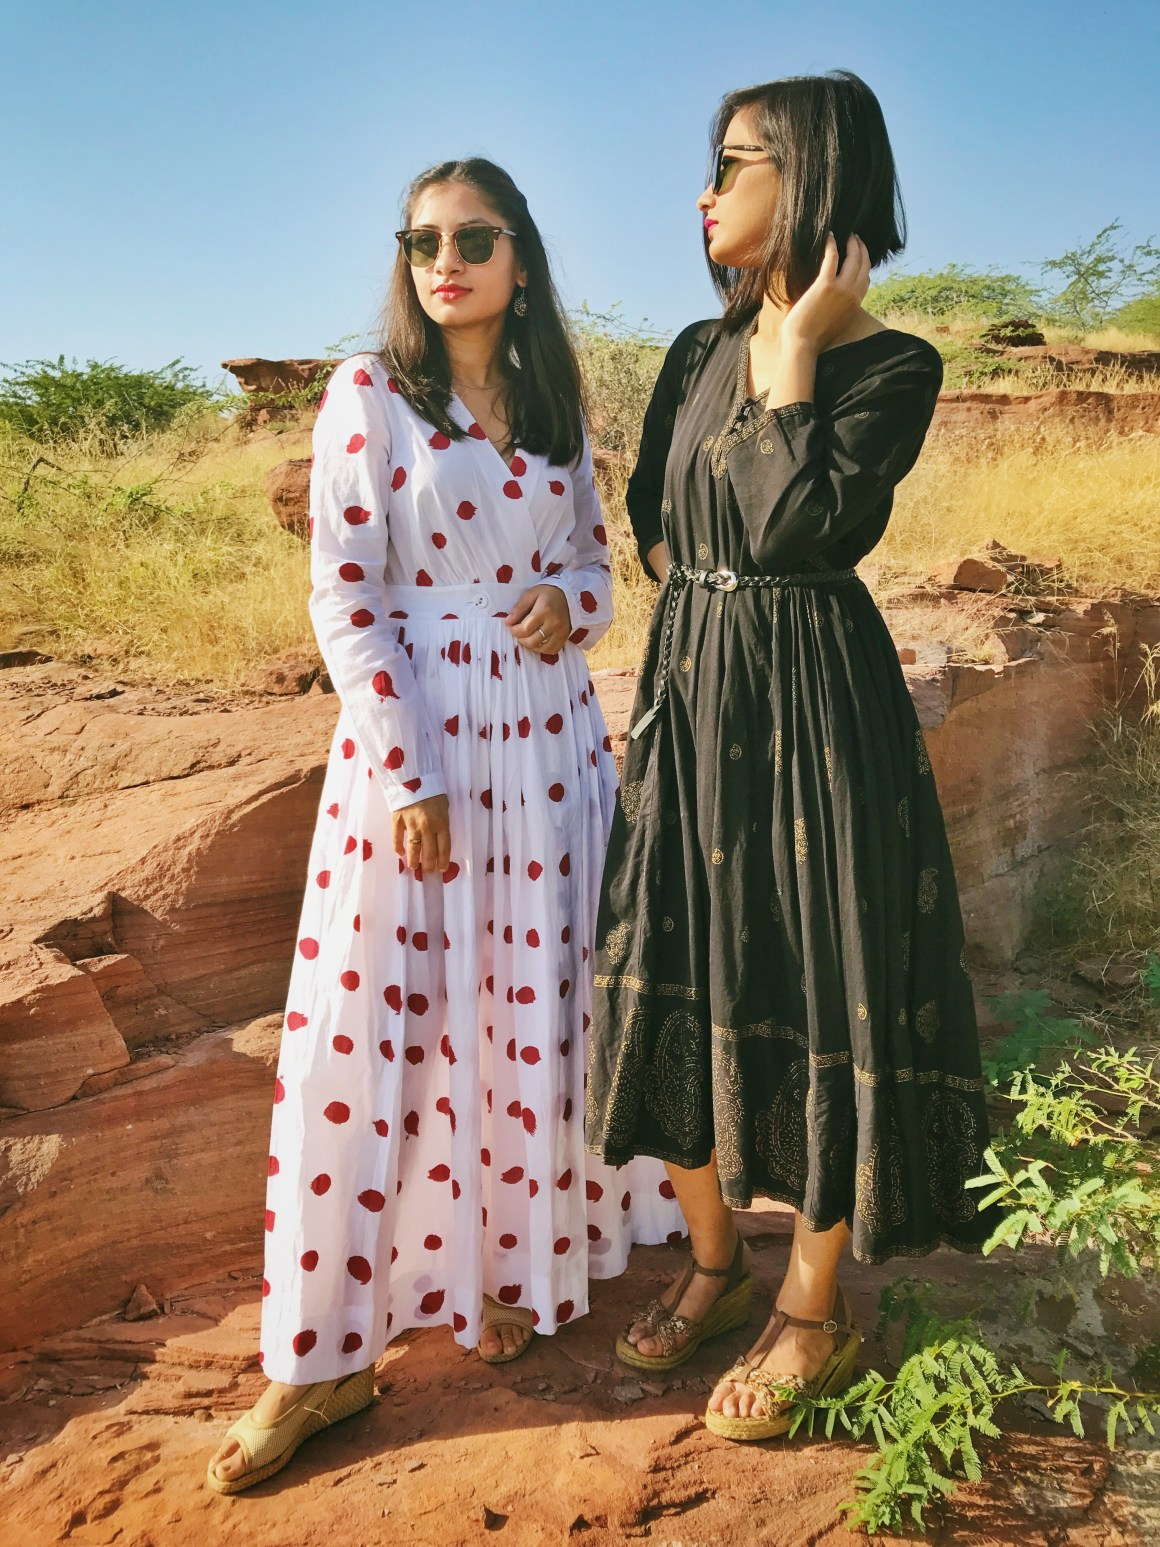 Of Summer Days & Cotton Dresses | Polka dot dress - Nicobar, Black dress - Anokhi